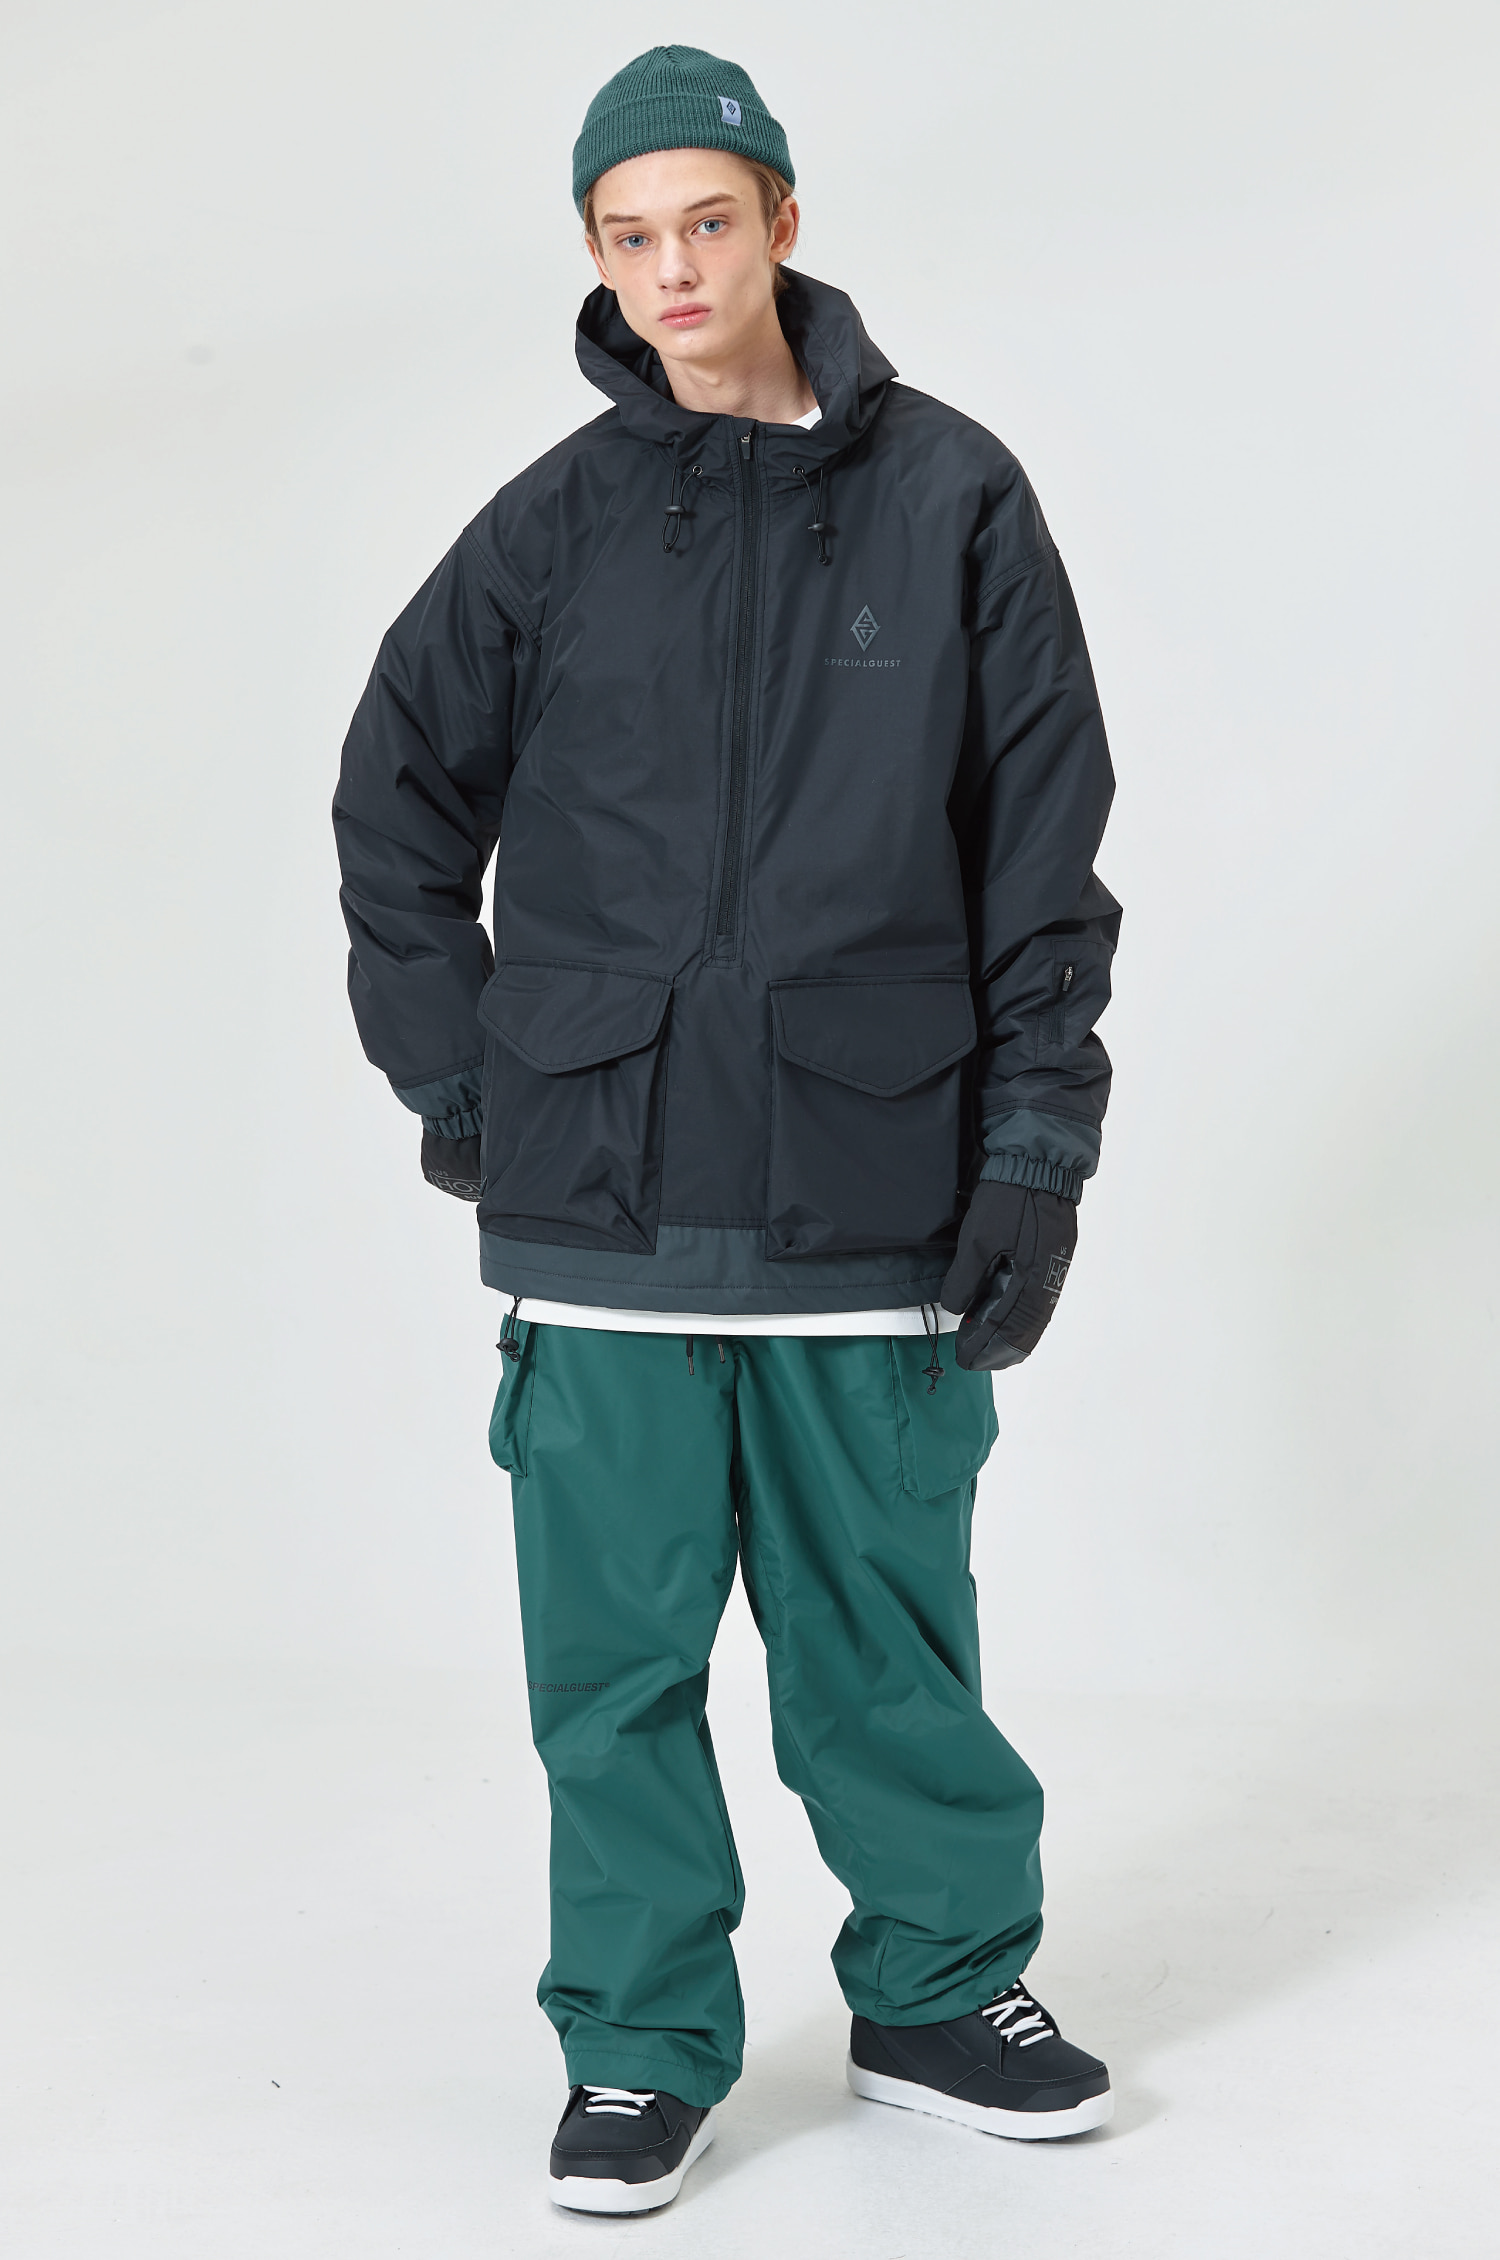 SET 23 - ANORAK / PANTS